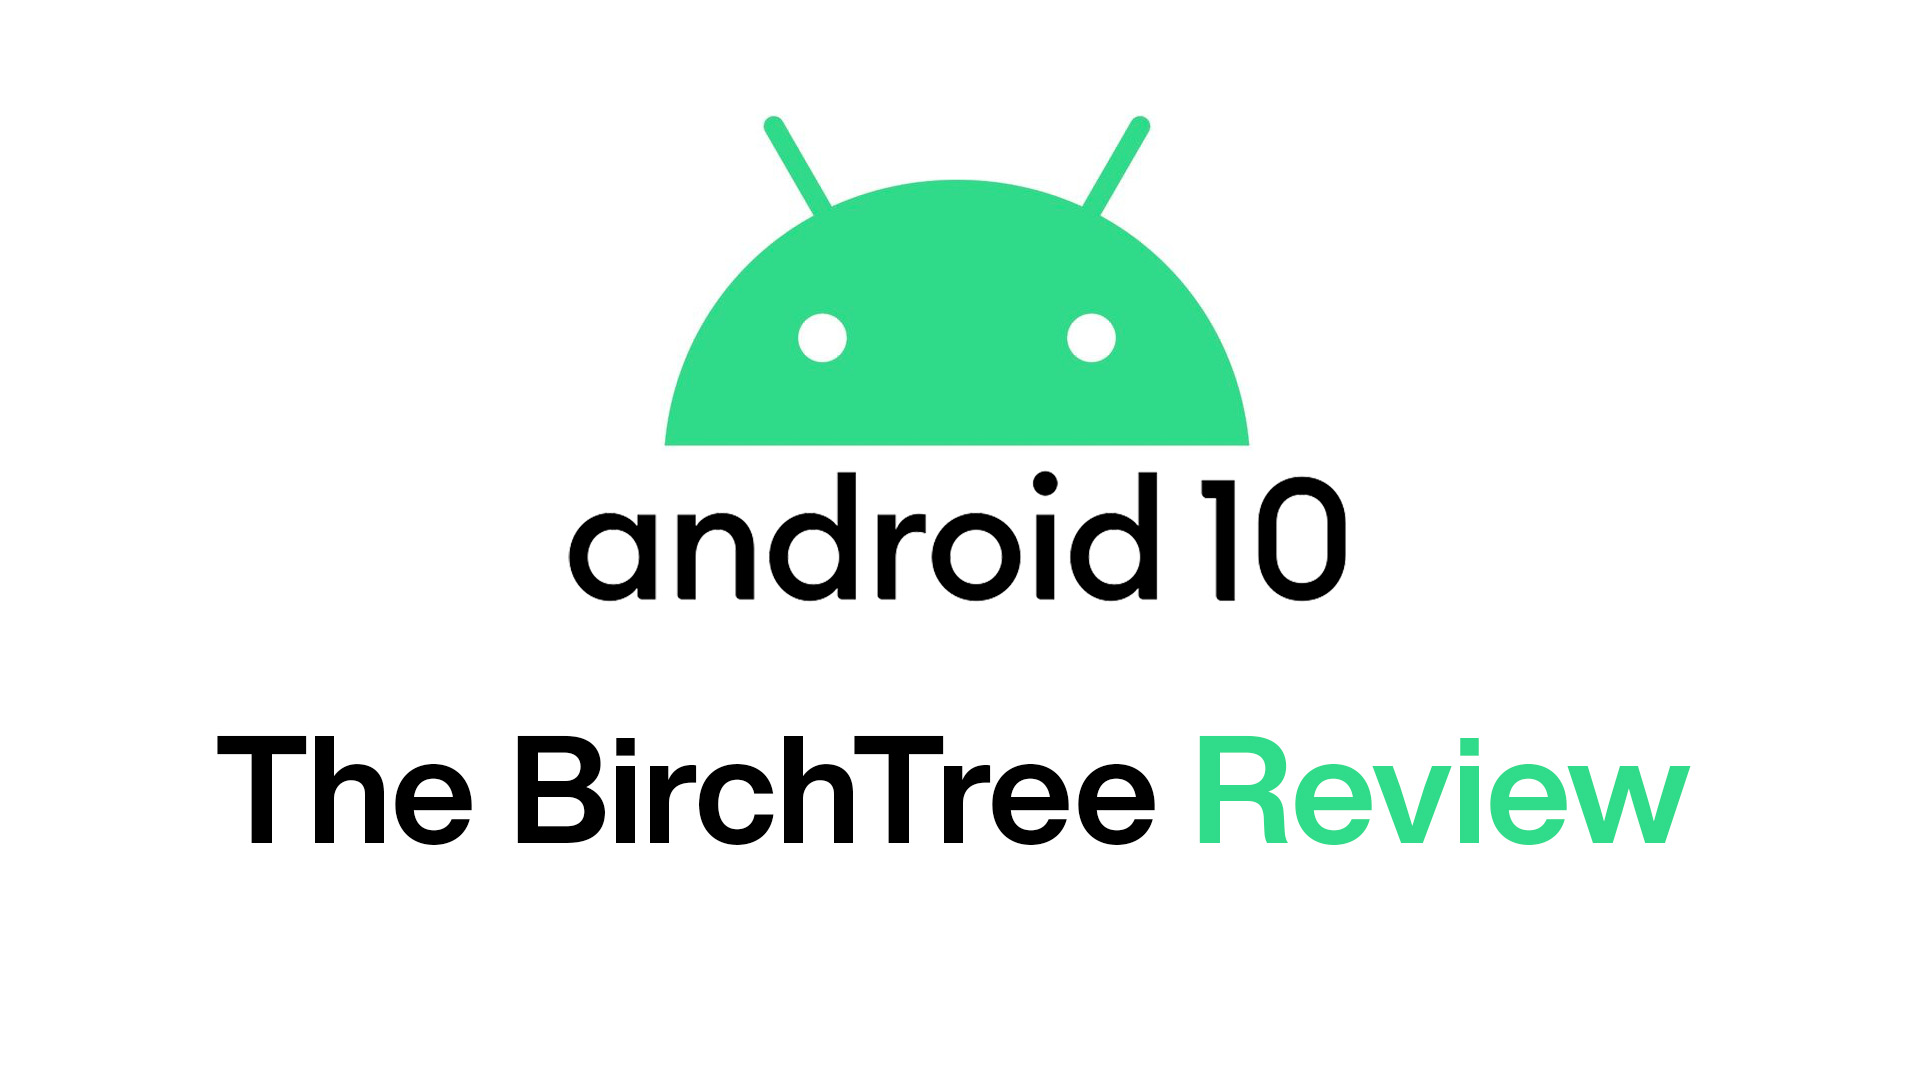 Android 10 Review – BirchTree